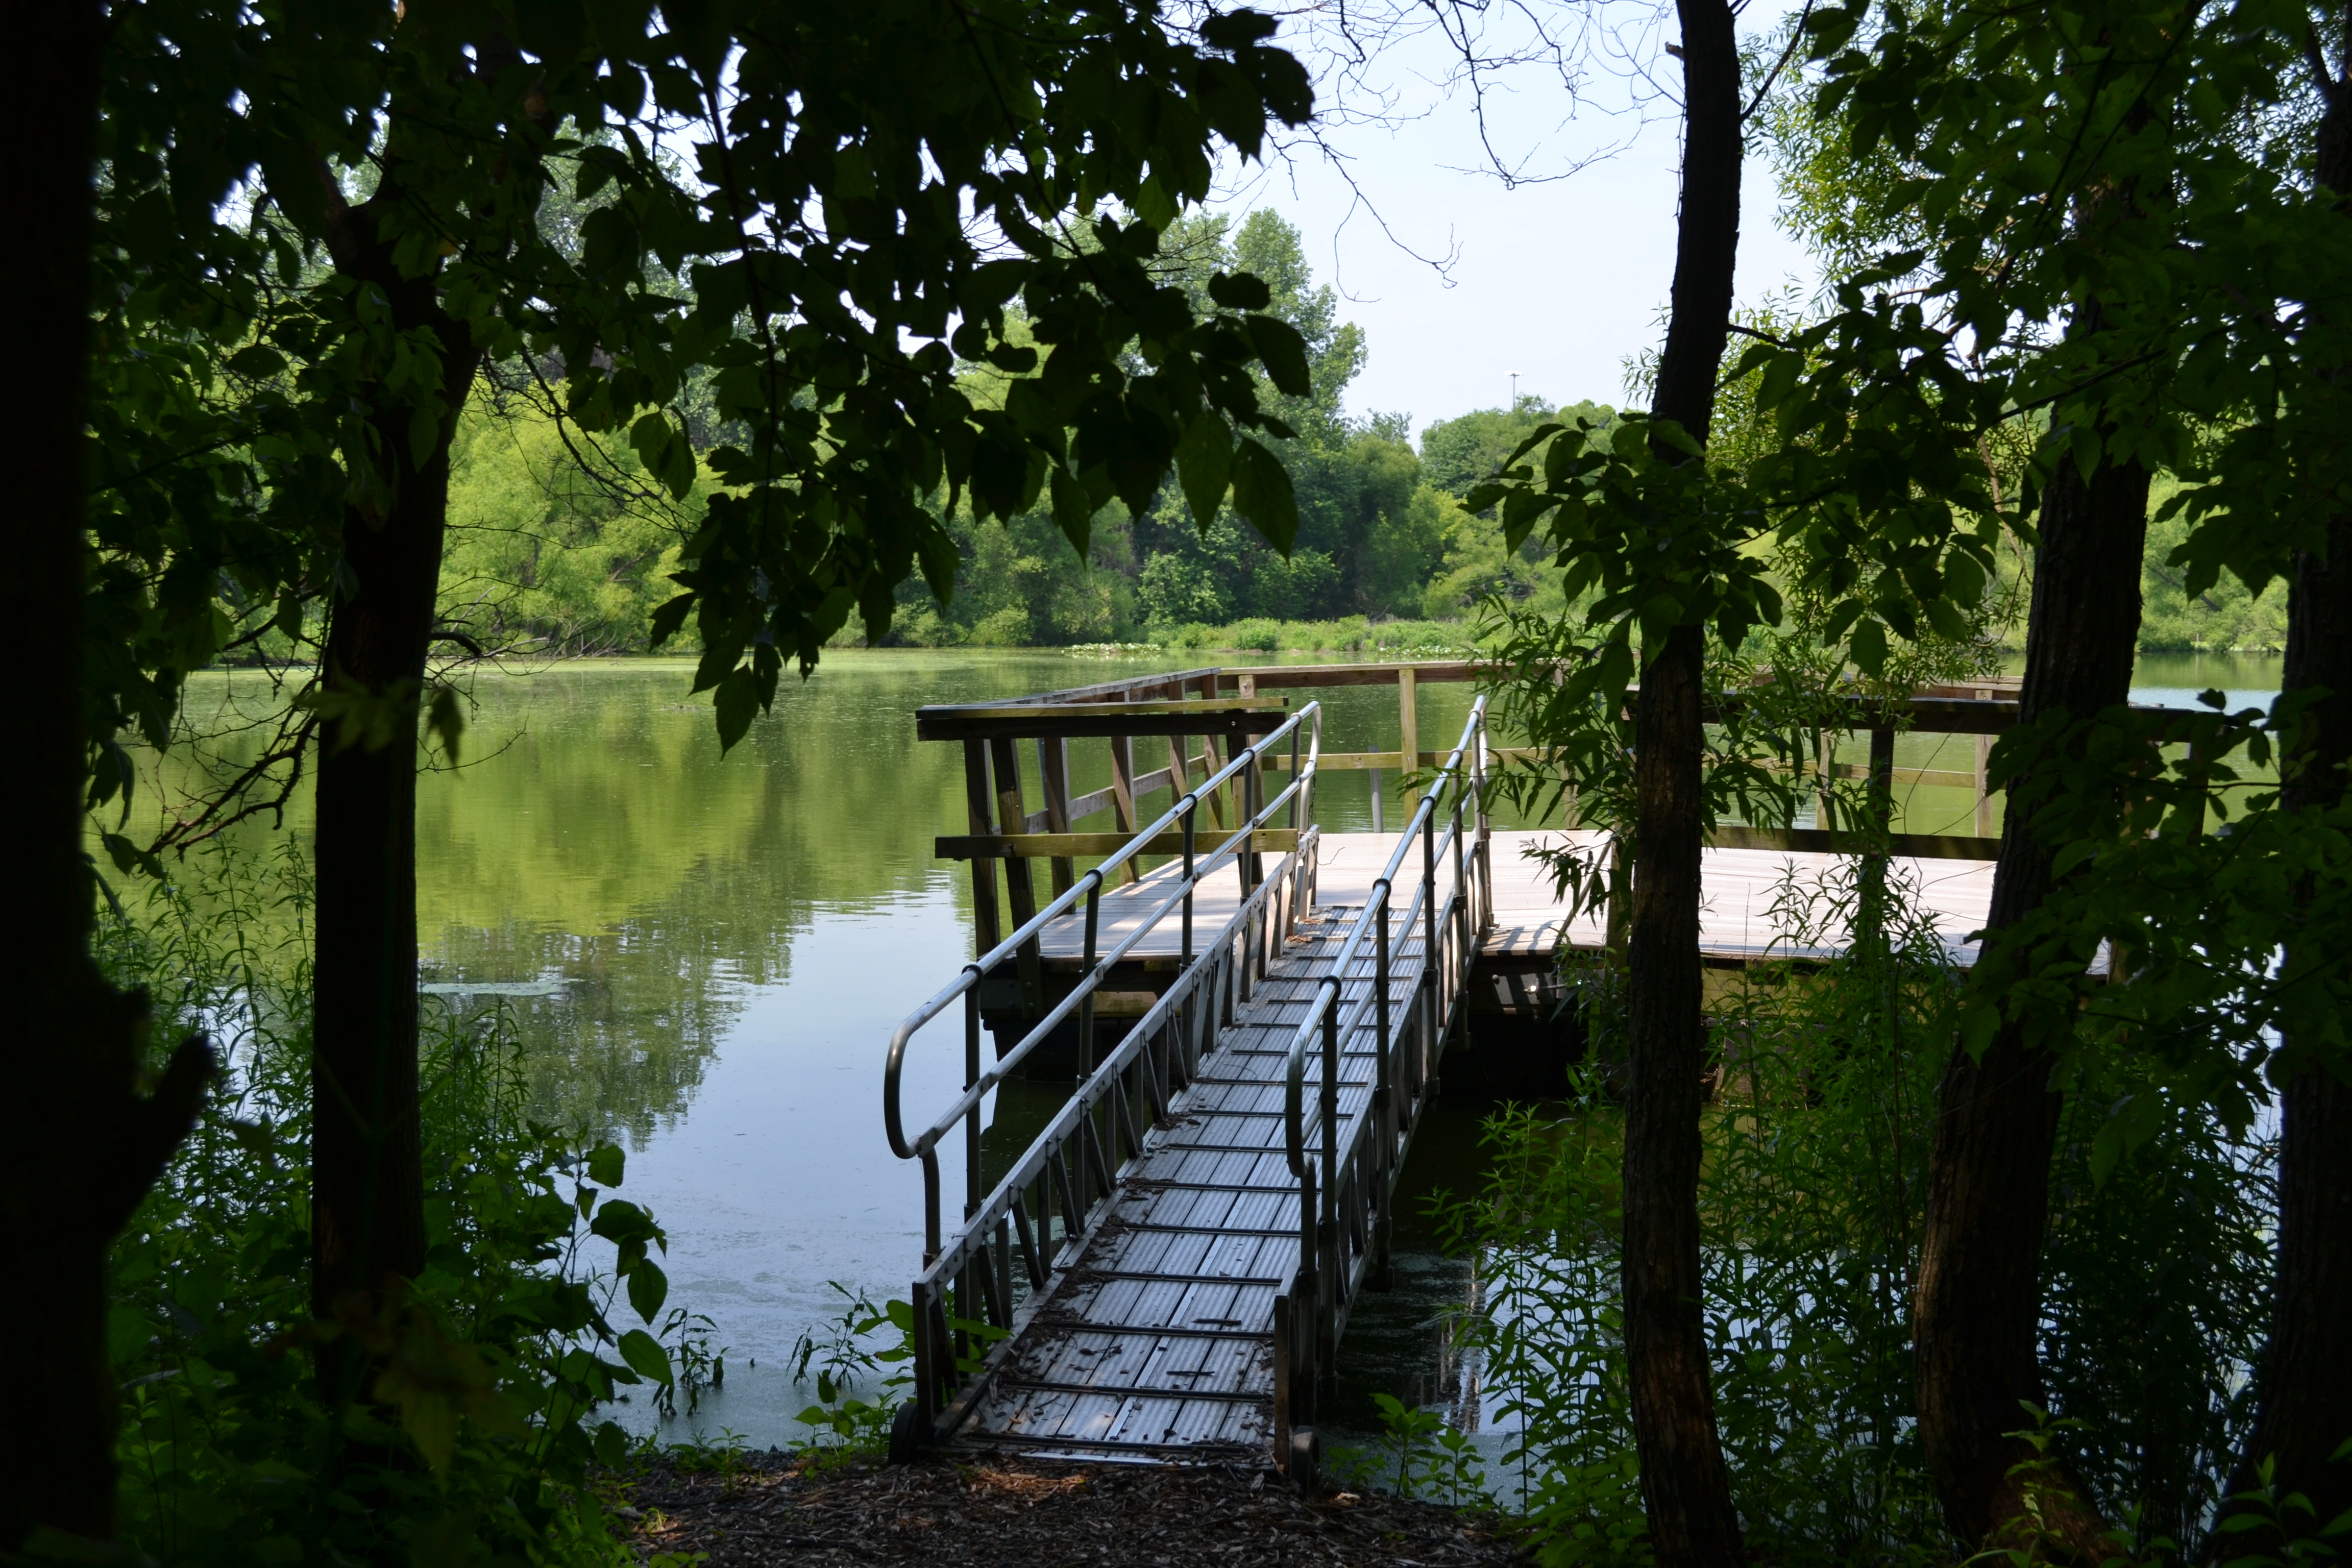 There are small, quiet ponds with access for fishing and/or bird watching